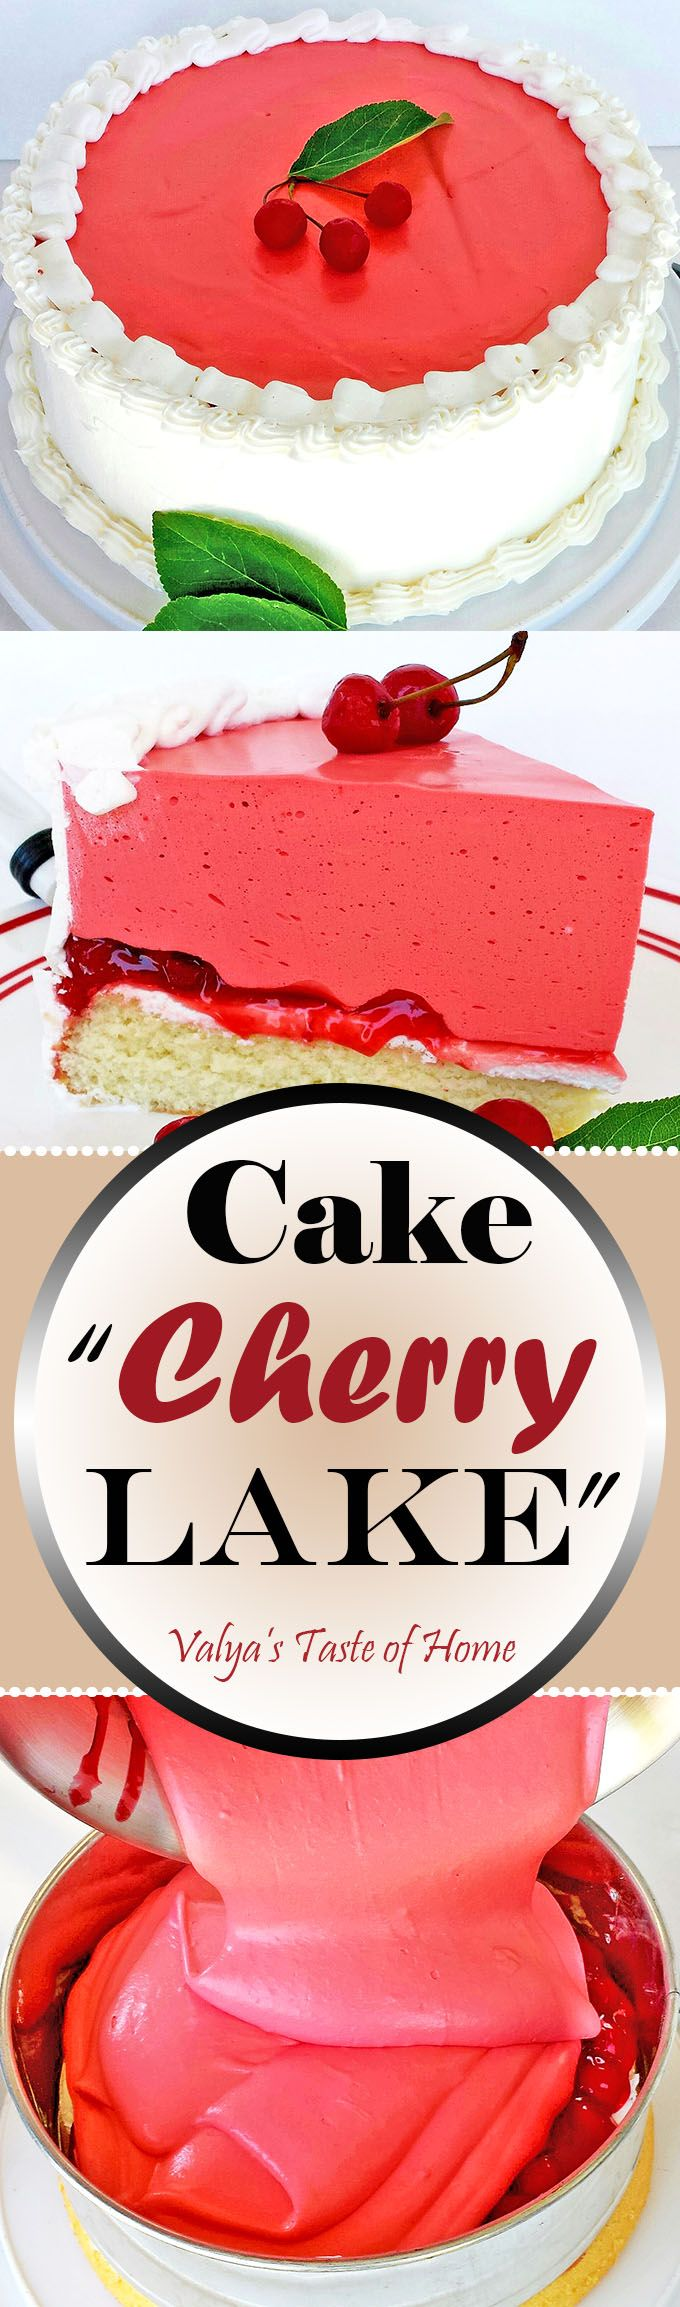 This cake is so delicious and full of flavor loaded with cherries, that even kids who are very picky eaters with dessert will love it and devour every crumb. Very easy to put together, but tastes so delicious.